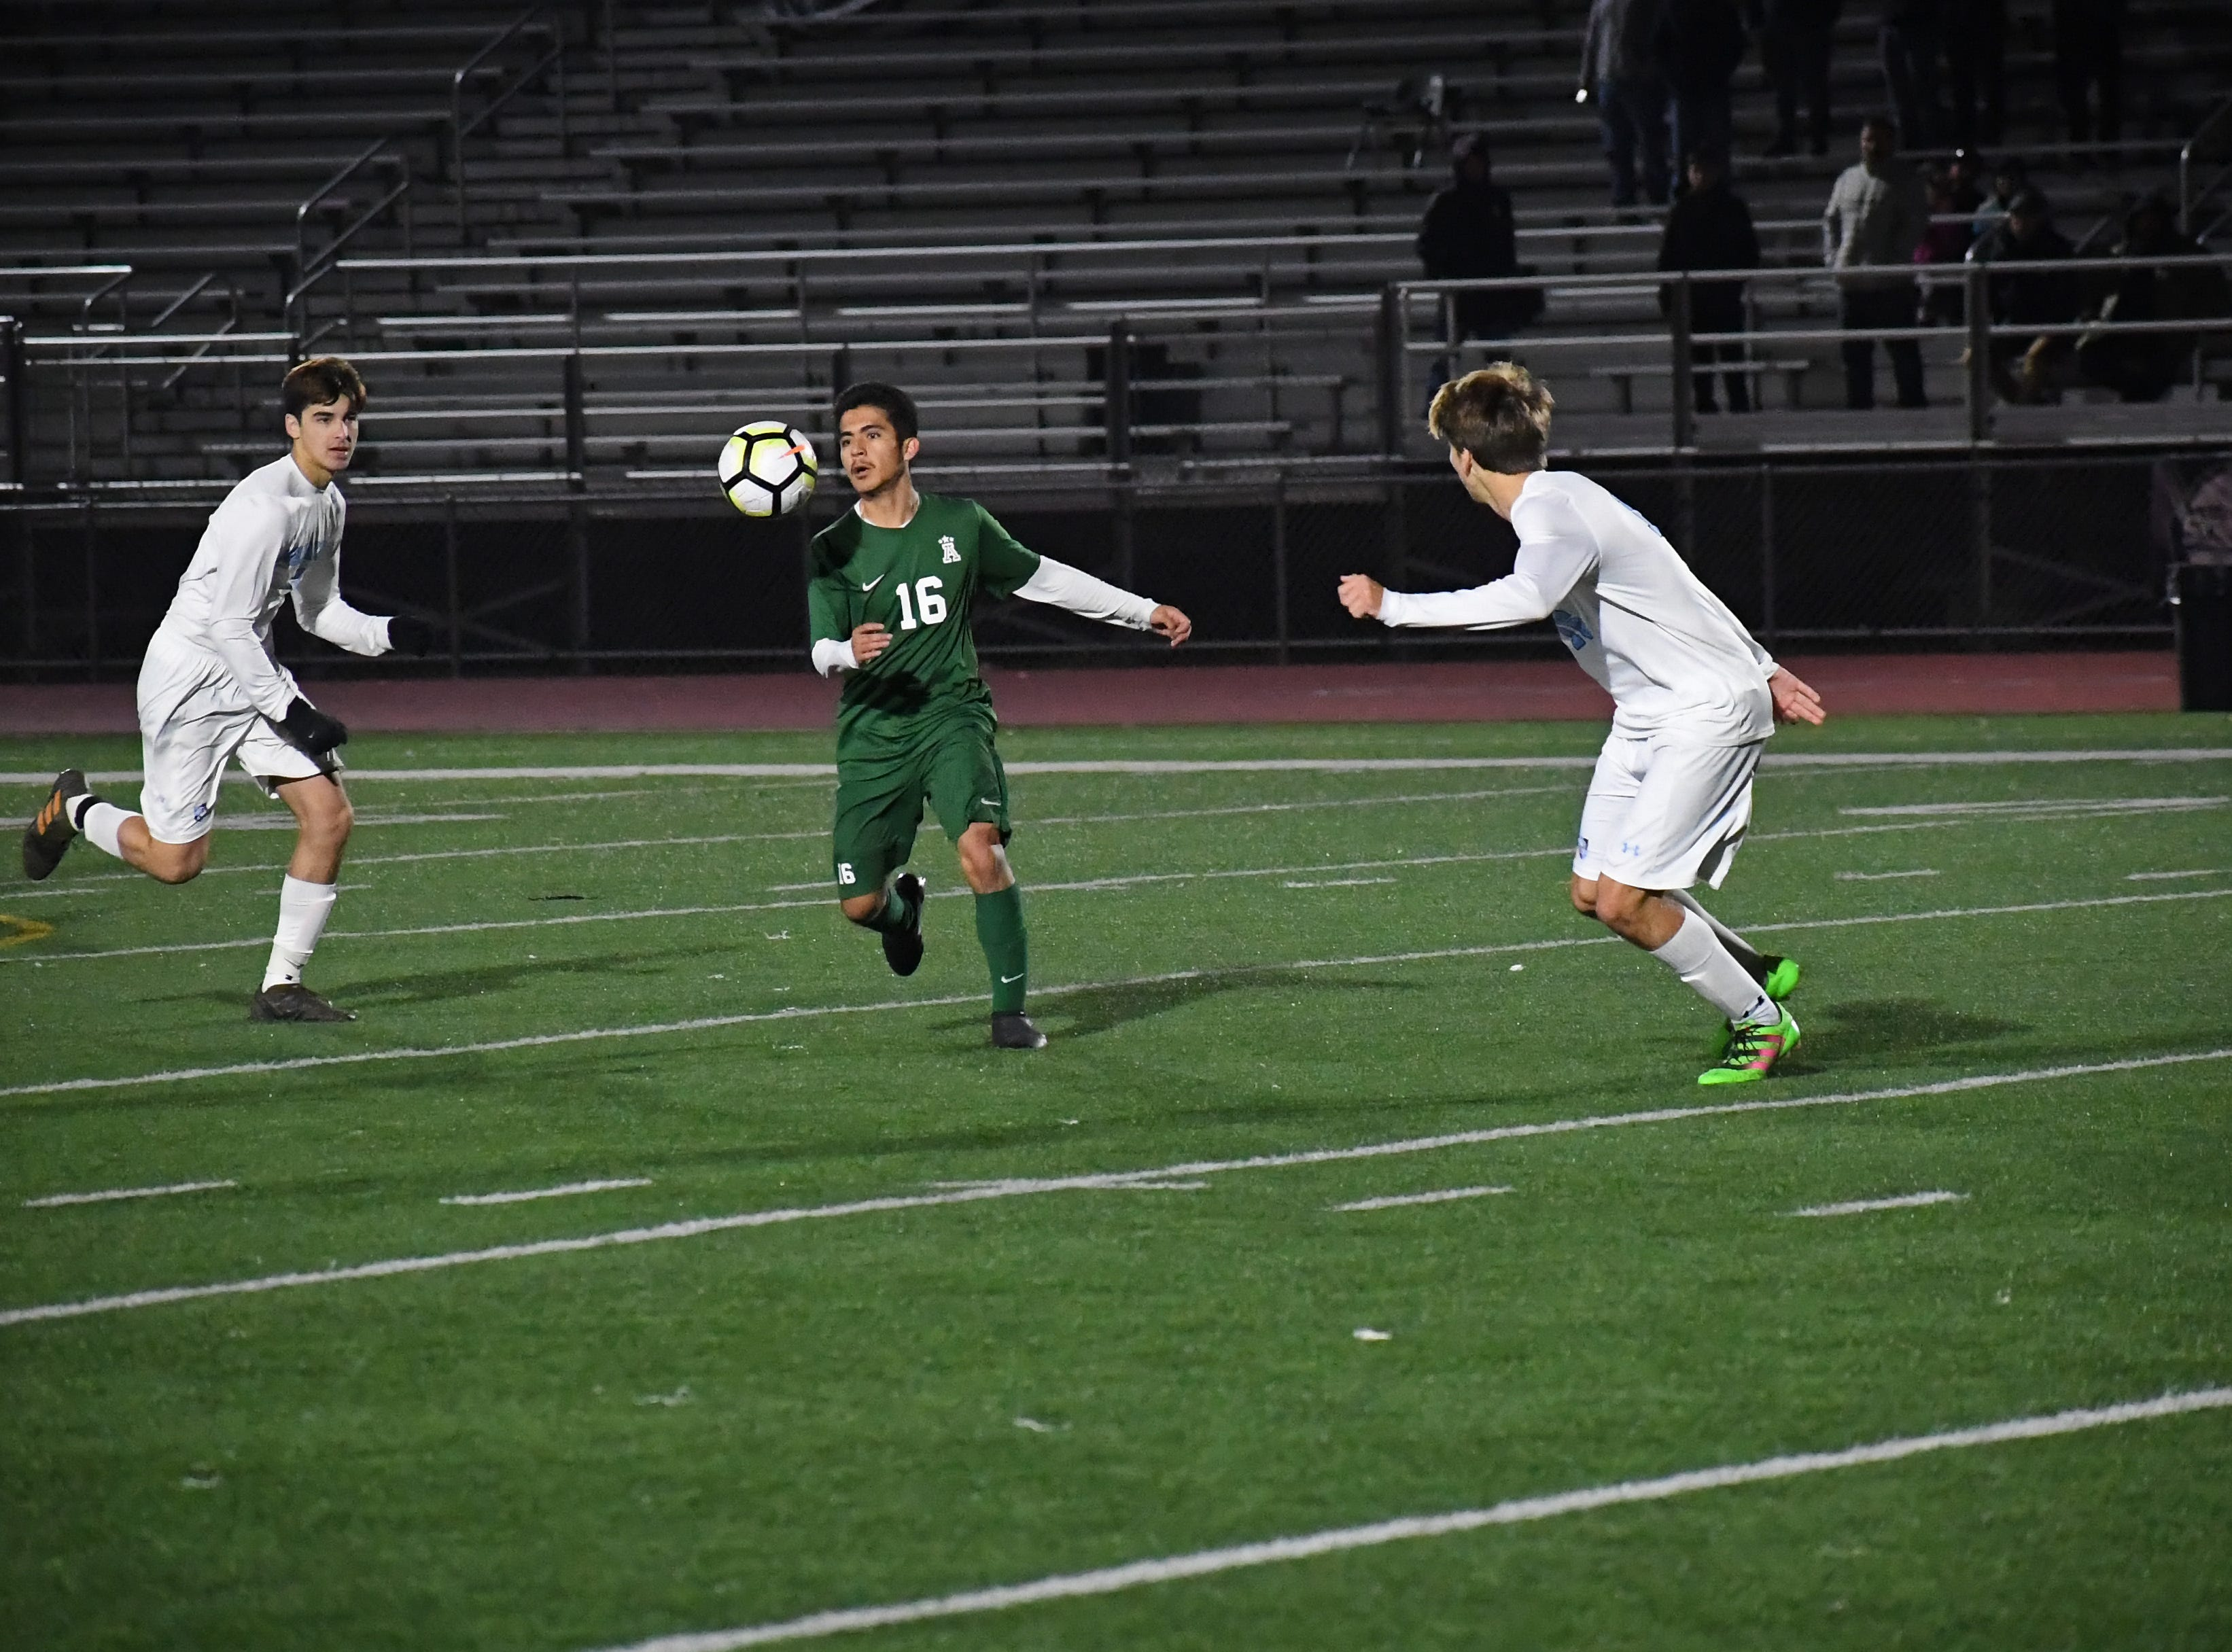 Forward Orlando Juarez-Hernandez (16) looks for a teammate after corralling a header.